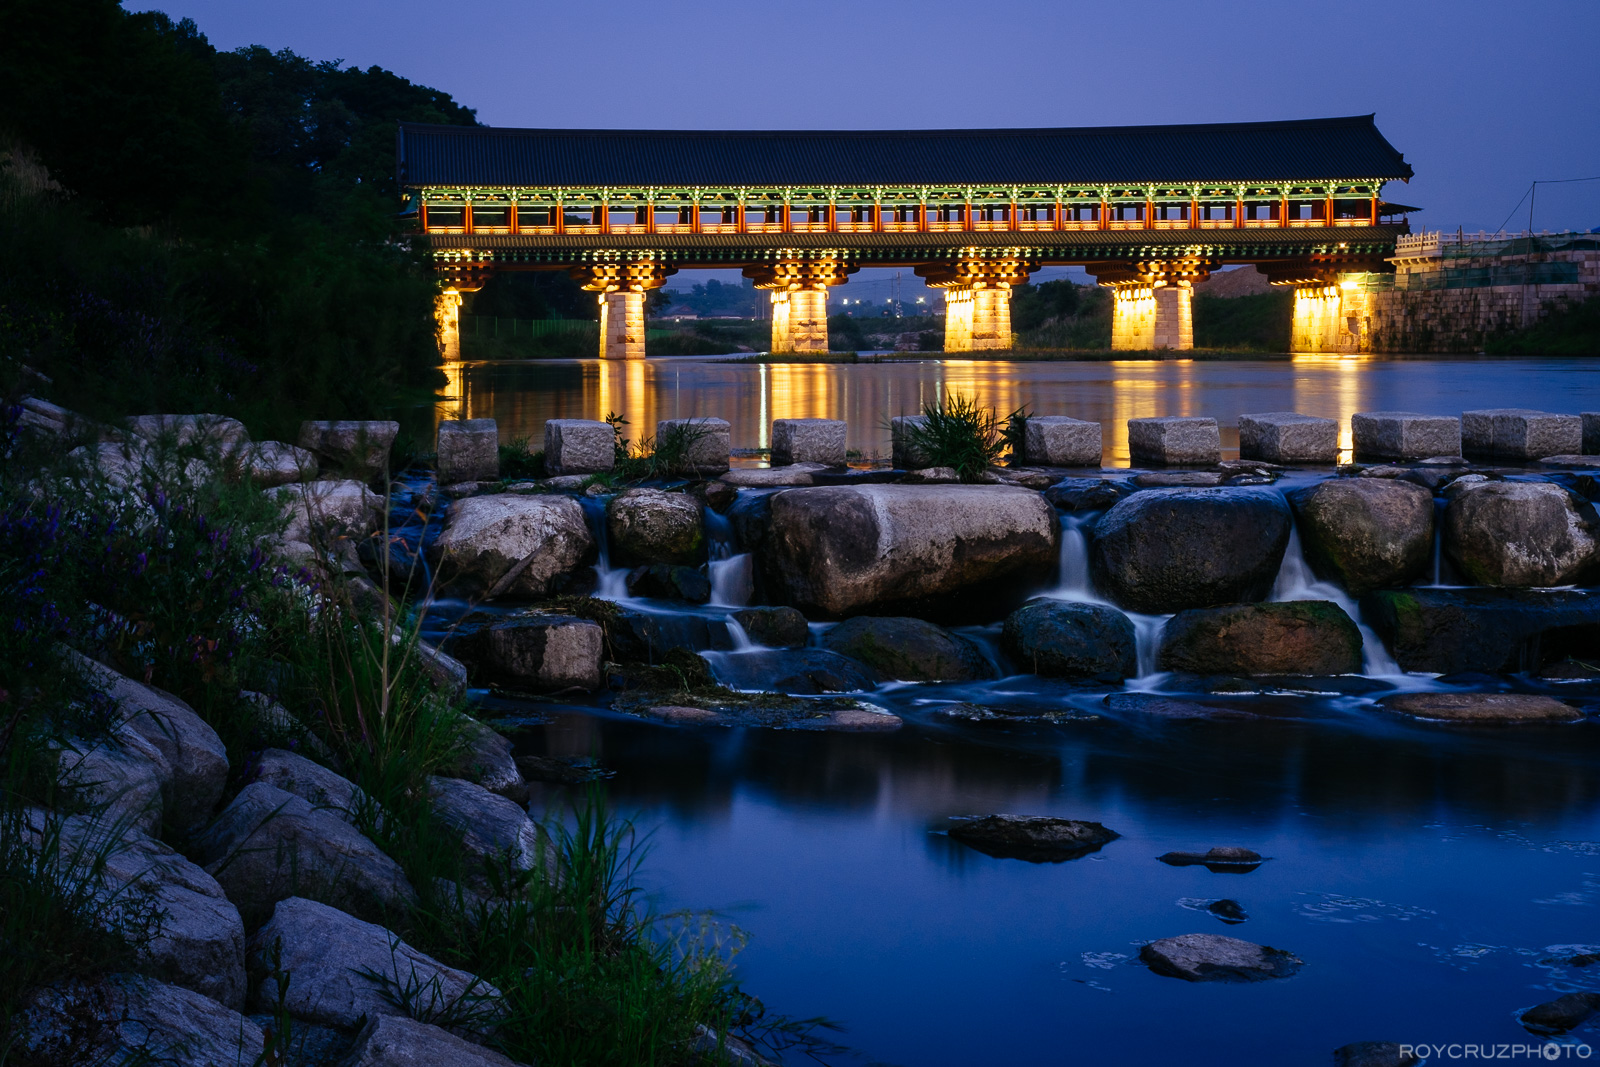 Gyeongju Woljeong Bridge 월정교